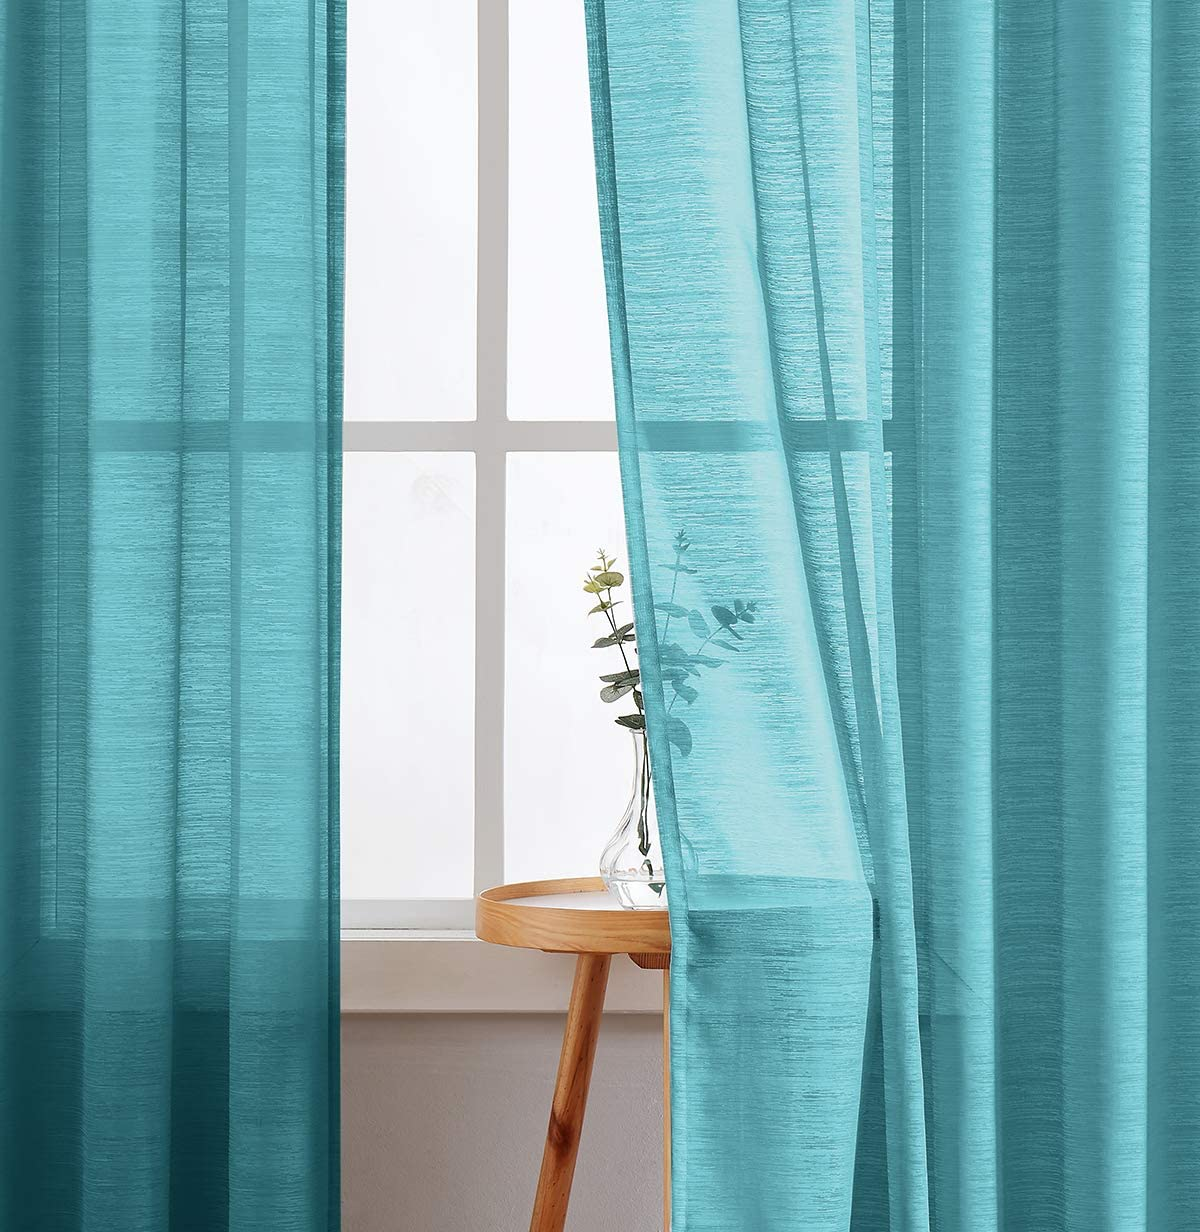 Fmfunctex Blue Sheer Curtains for Living Room Bedroom 84-inch Length Curtain Panels for Windows Draperies 1 Pair